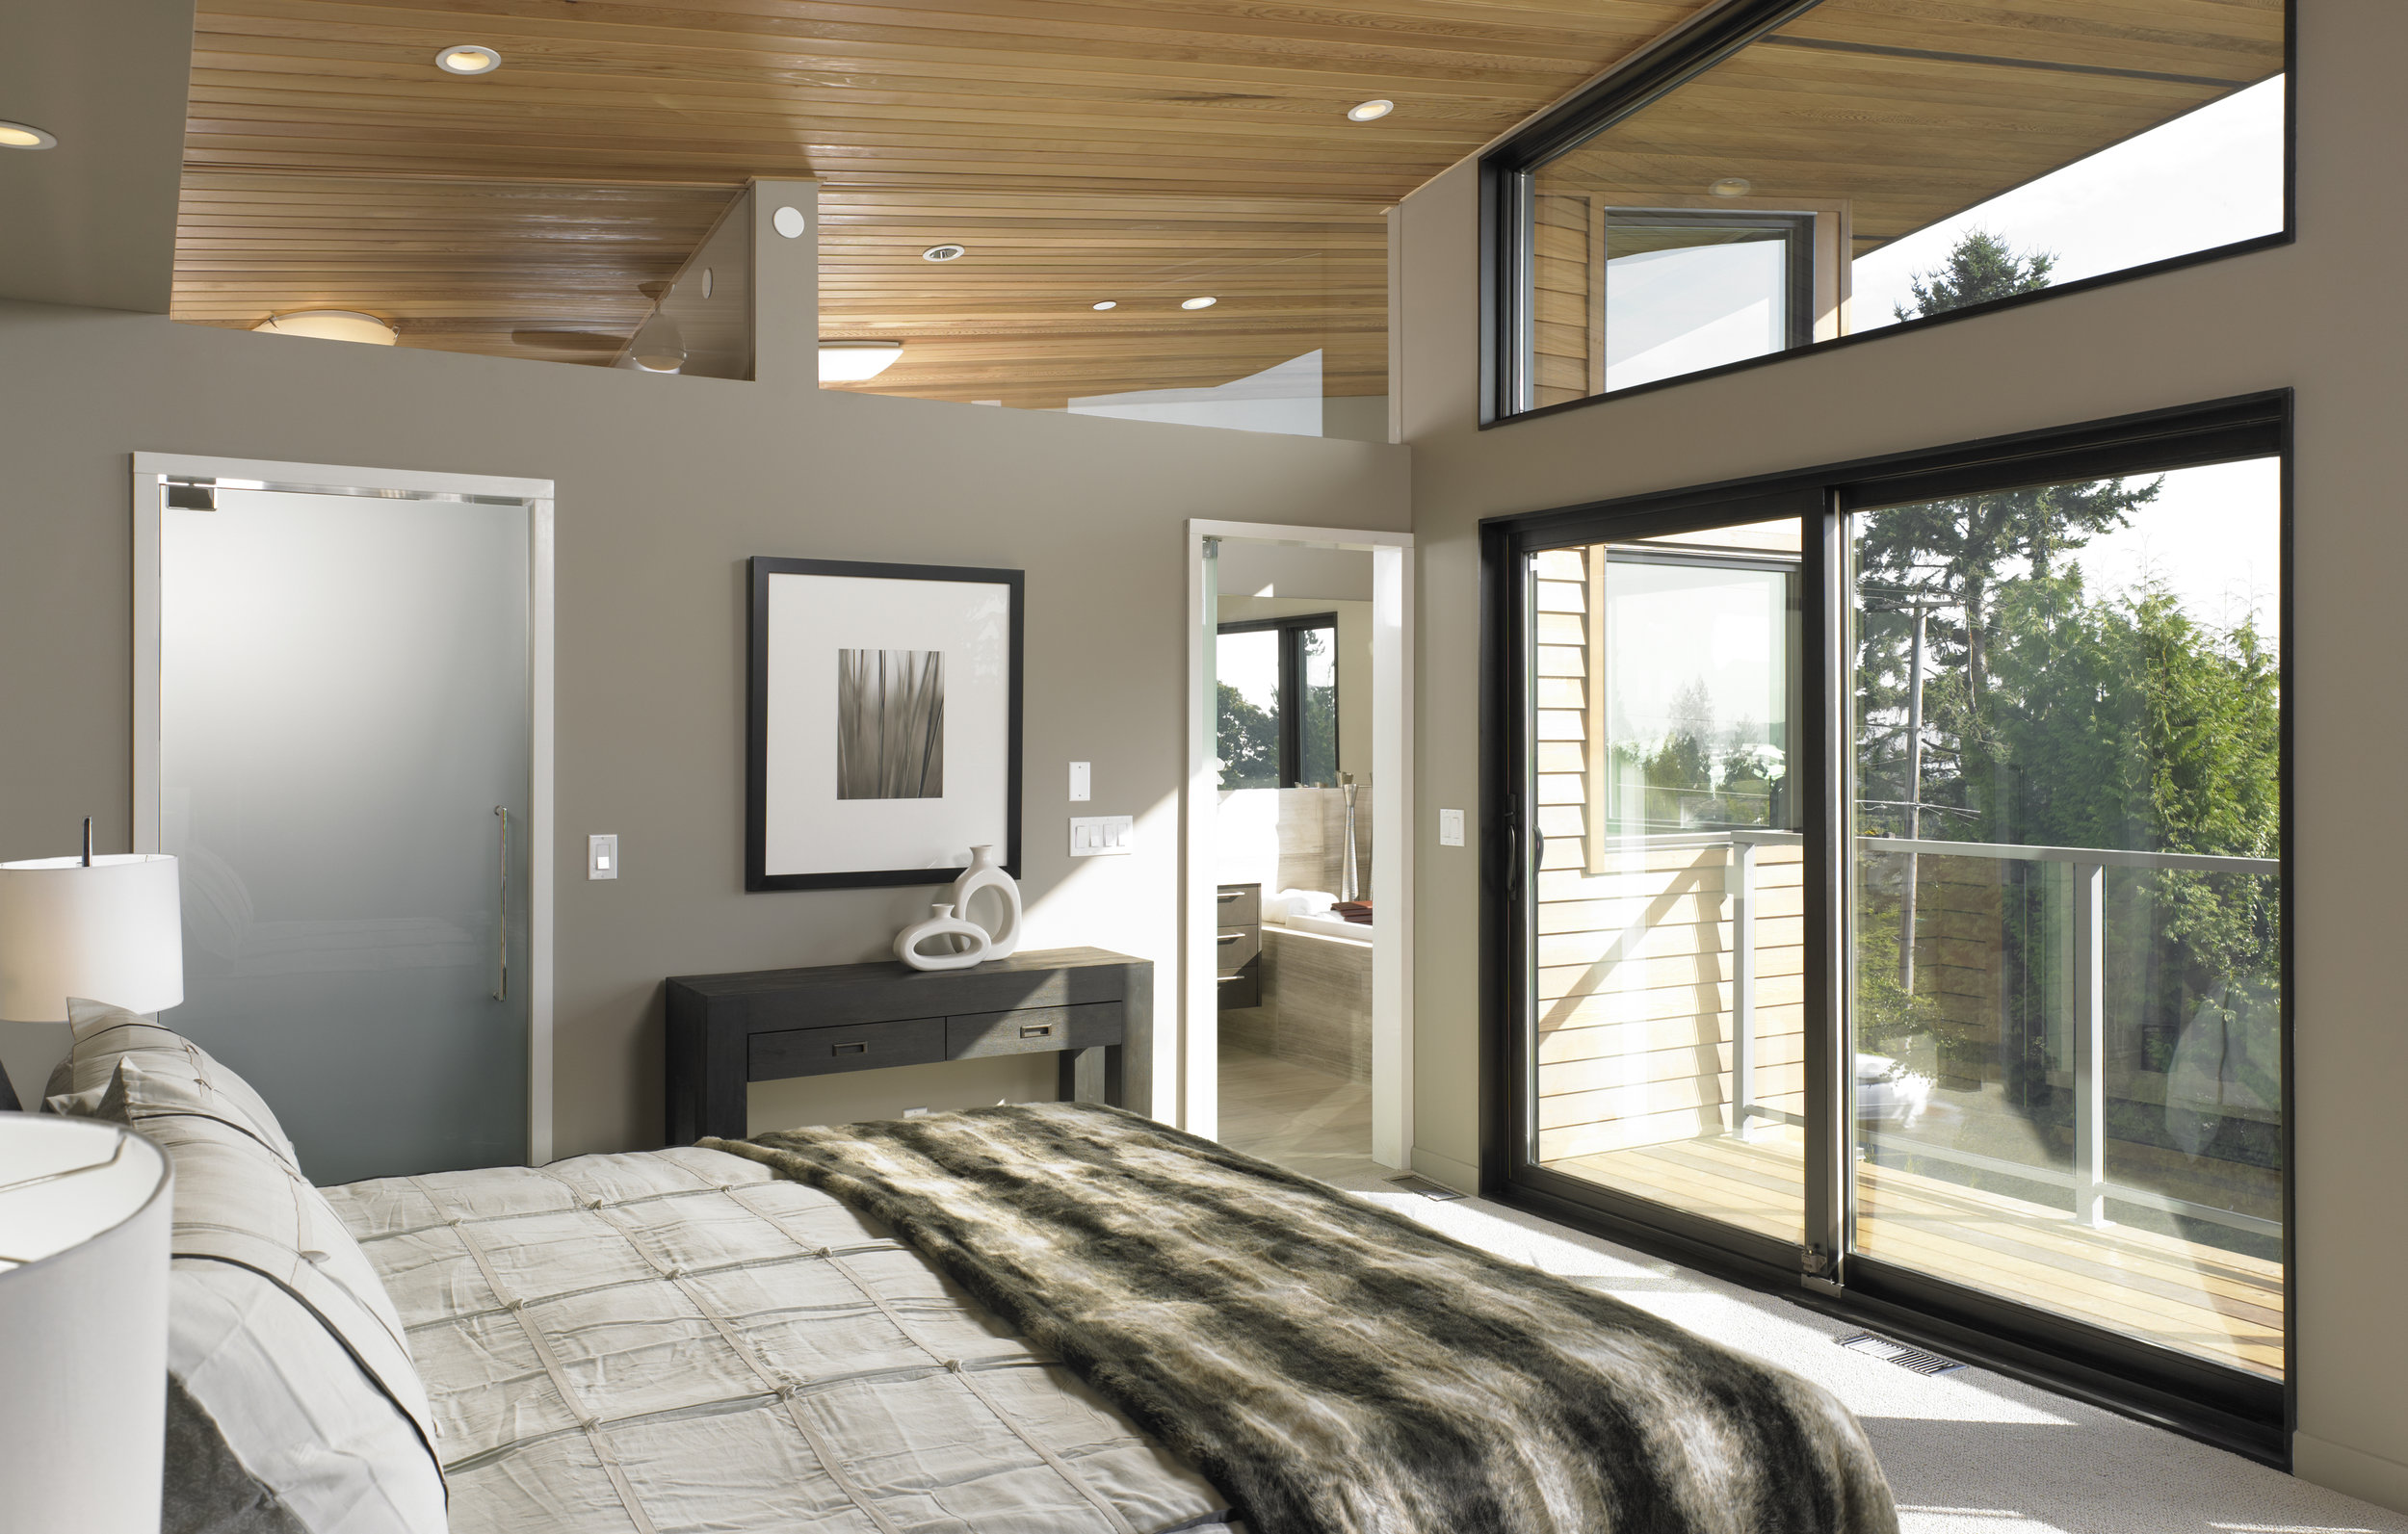 turkel_modern_design_prefab_home_west_vancouver_bedroom.jpg